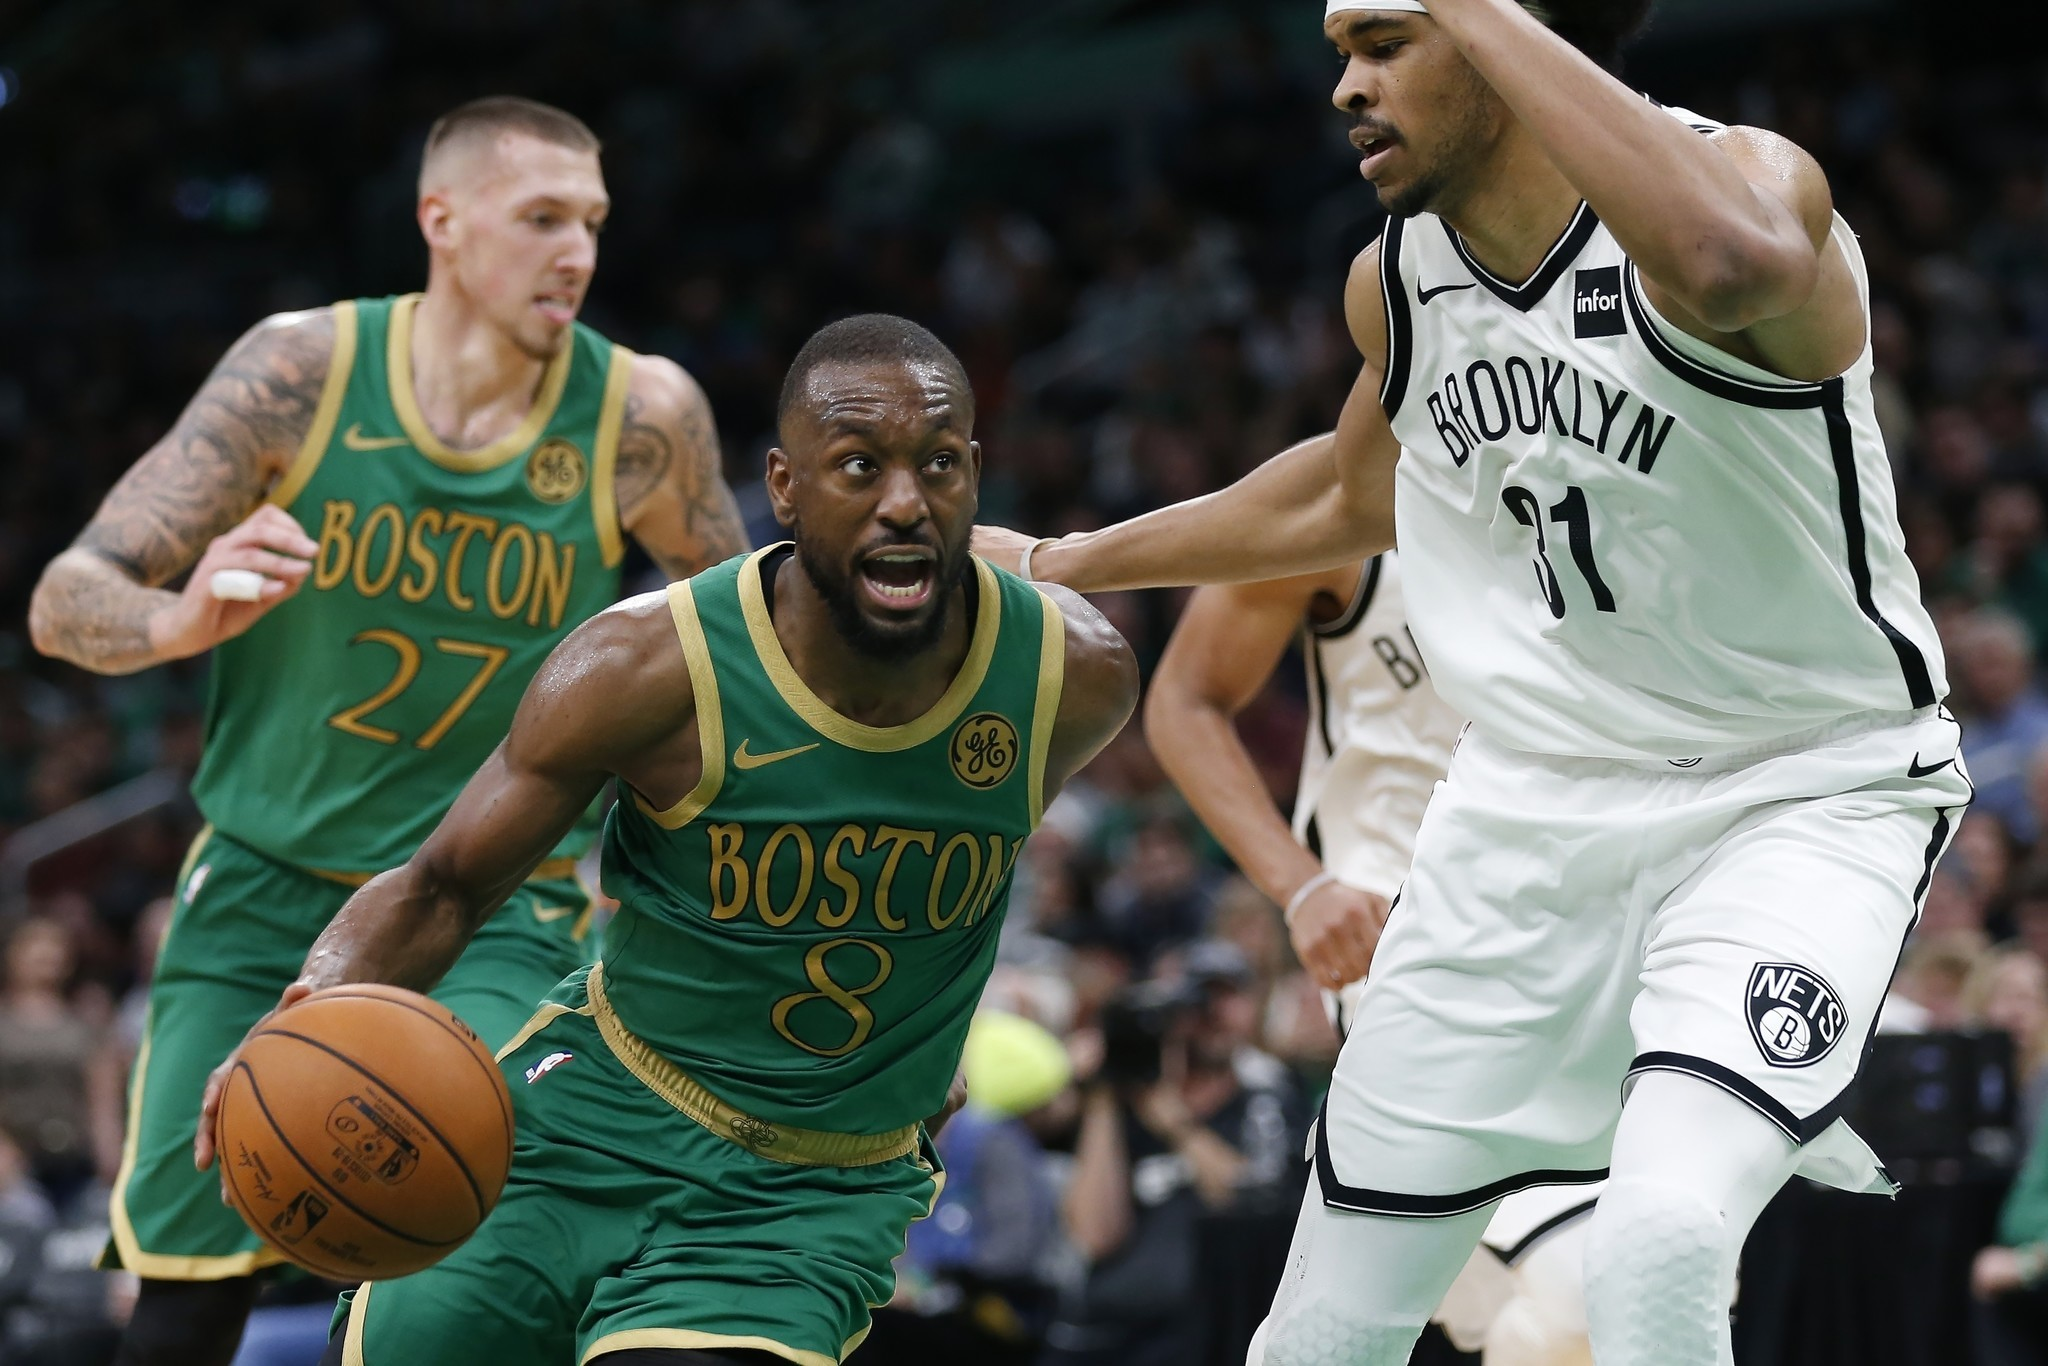 Kemba Walker overwhelms Nets with 39 points as Celtics fans chant 'Kyrie sucks!'